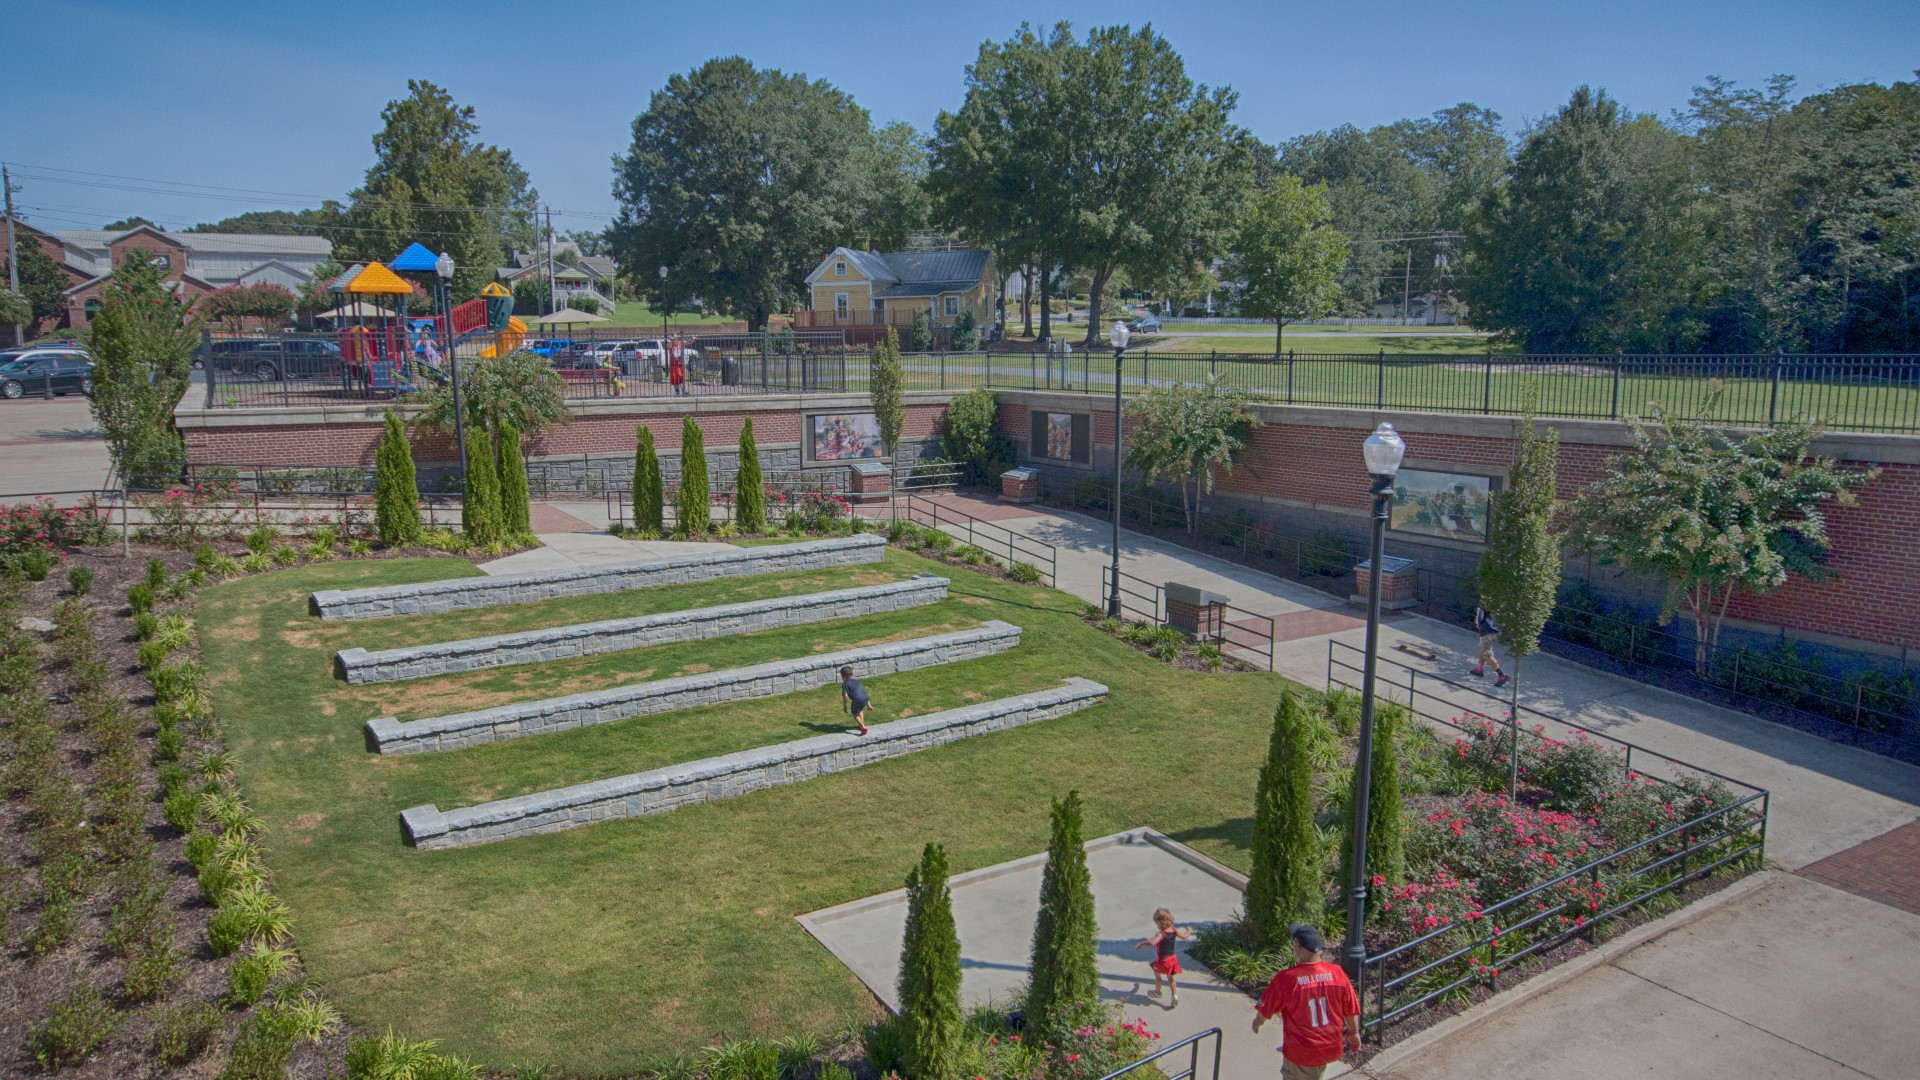 TSW City-of-Kennesaw-Depot-Park-001 City of Kennesaw Depot Park    TSW